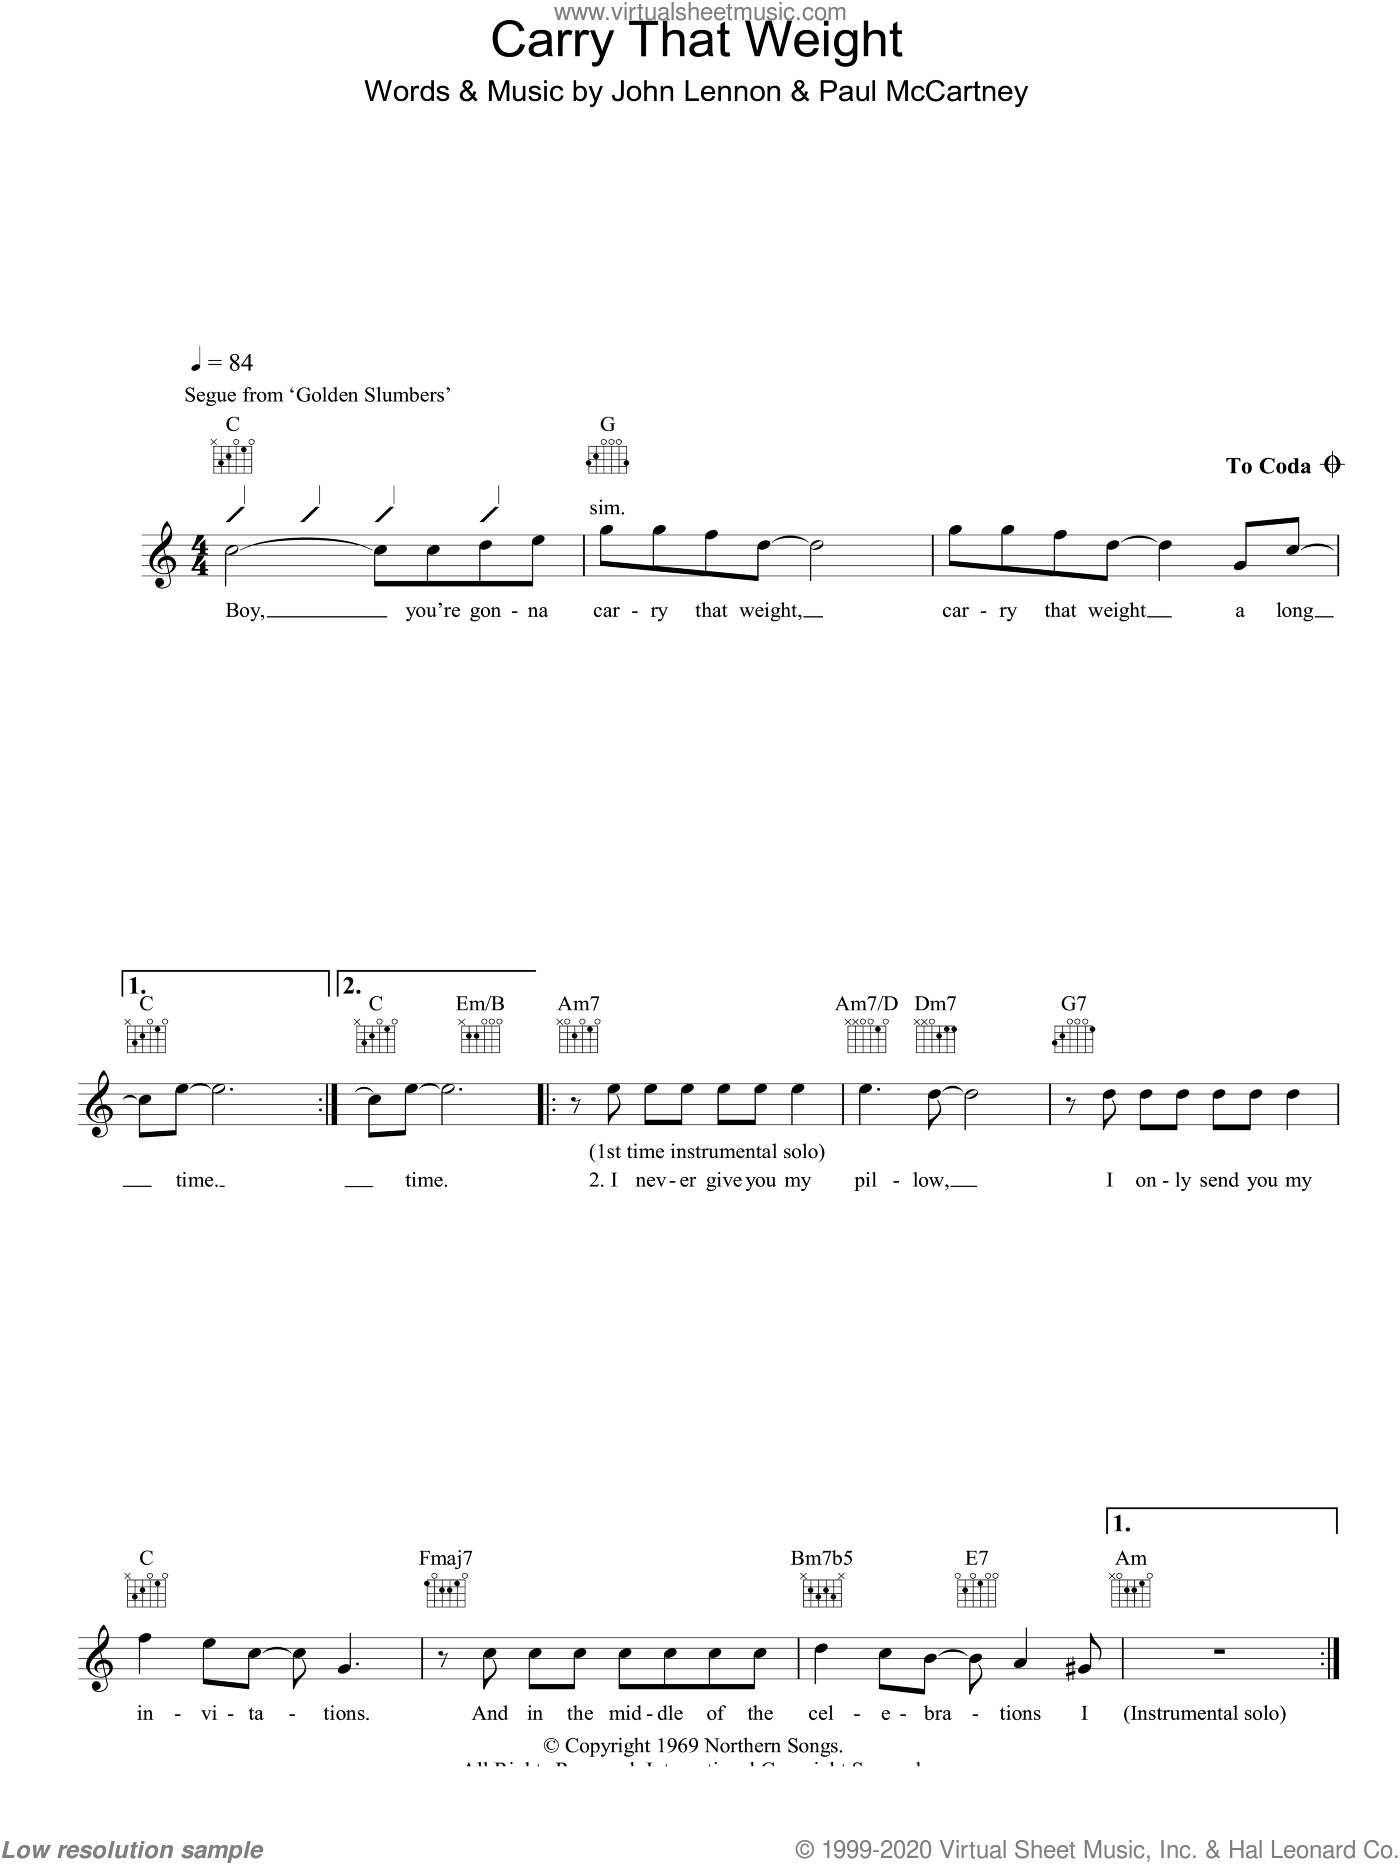 Carry That Weight sheet music for voice and other instruments (fake book) by The Beatles, John Lennon and Paul McCartney, intermediate skill level